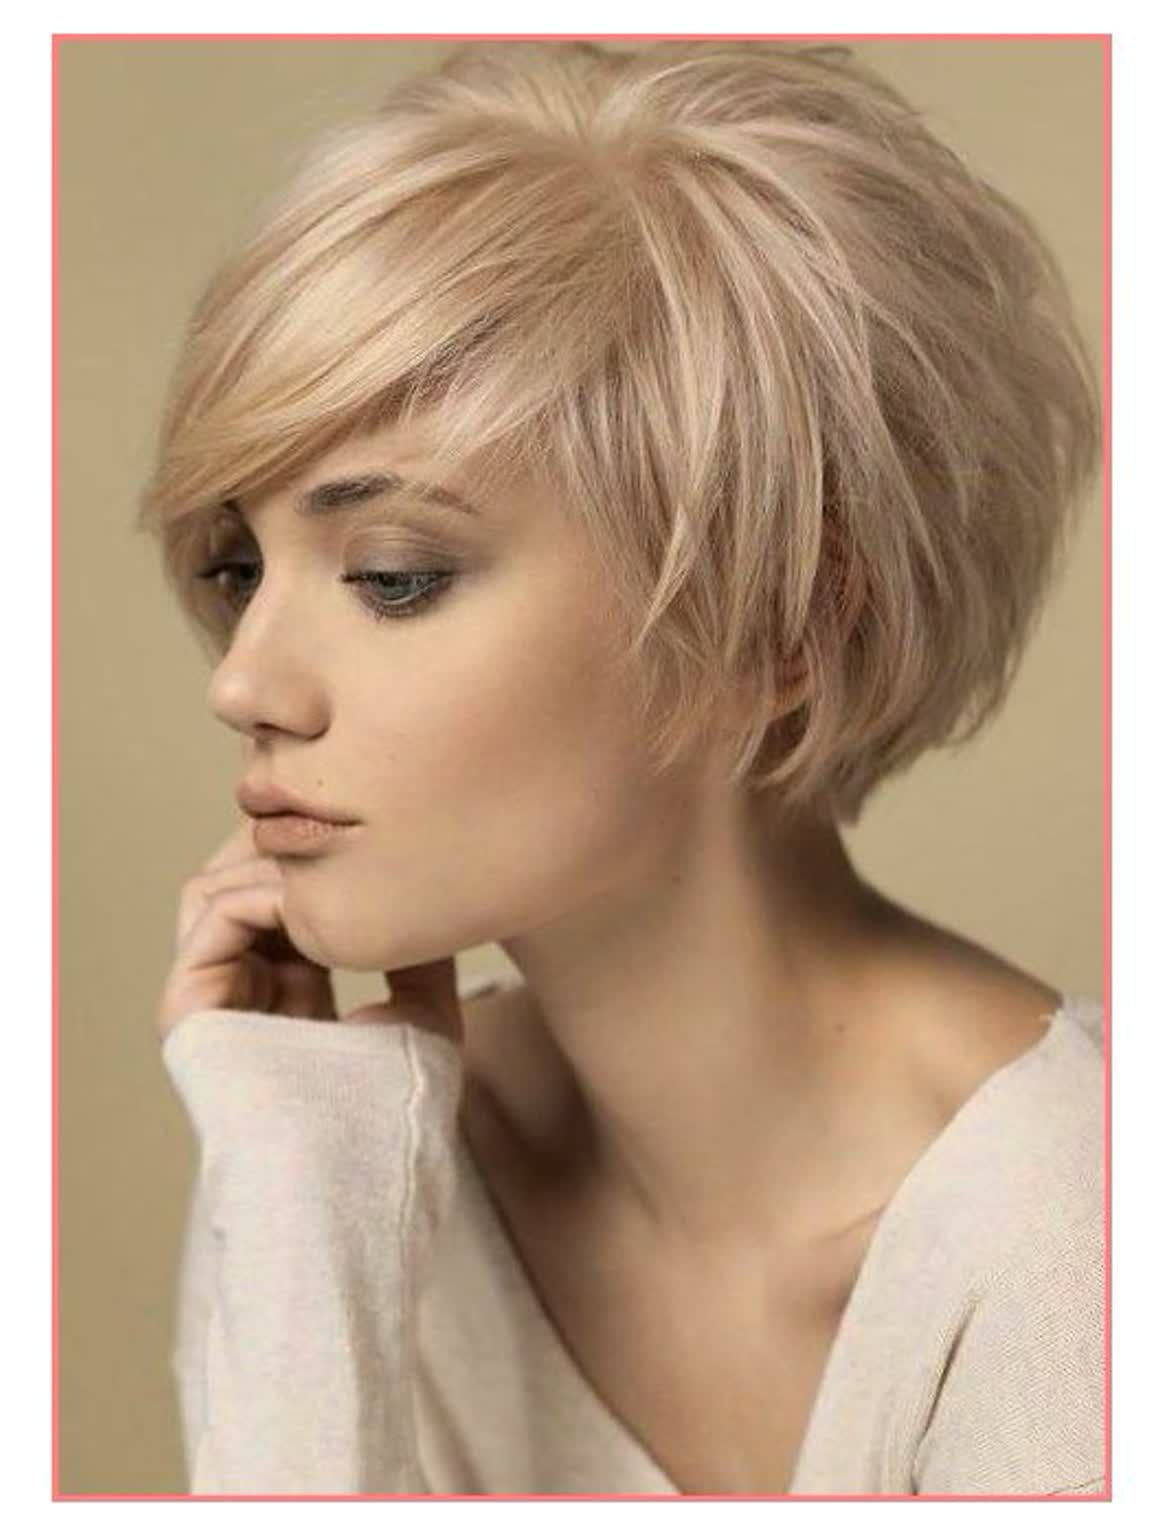 Short hairstyles for women hairstyles beauty and health in